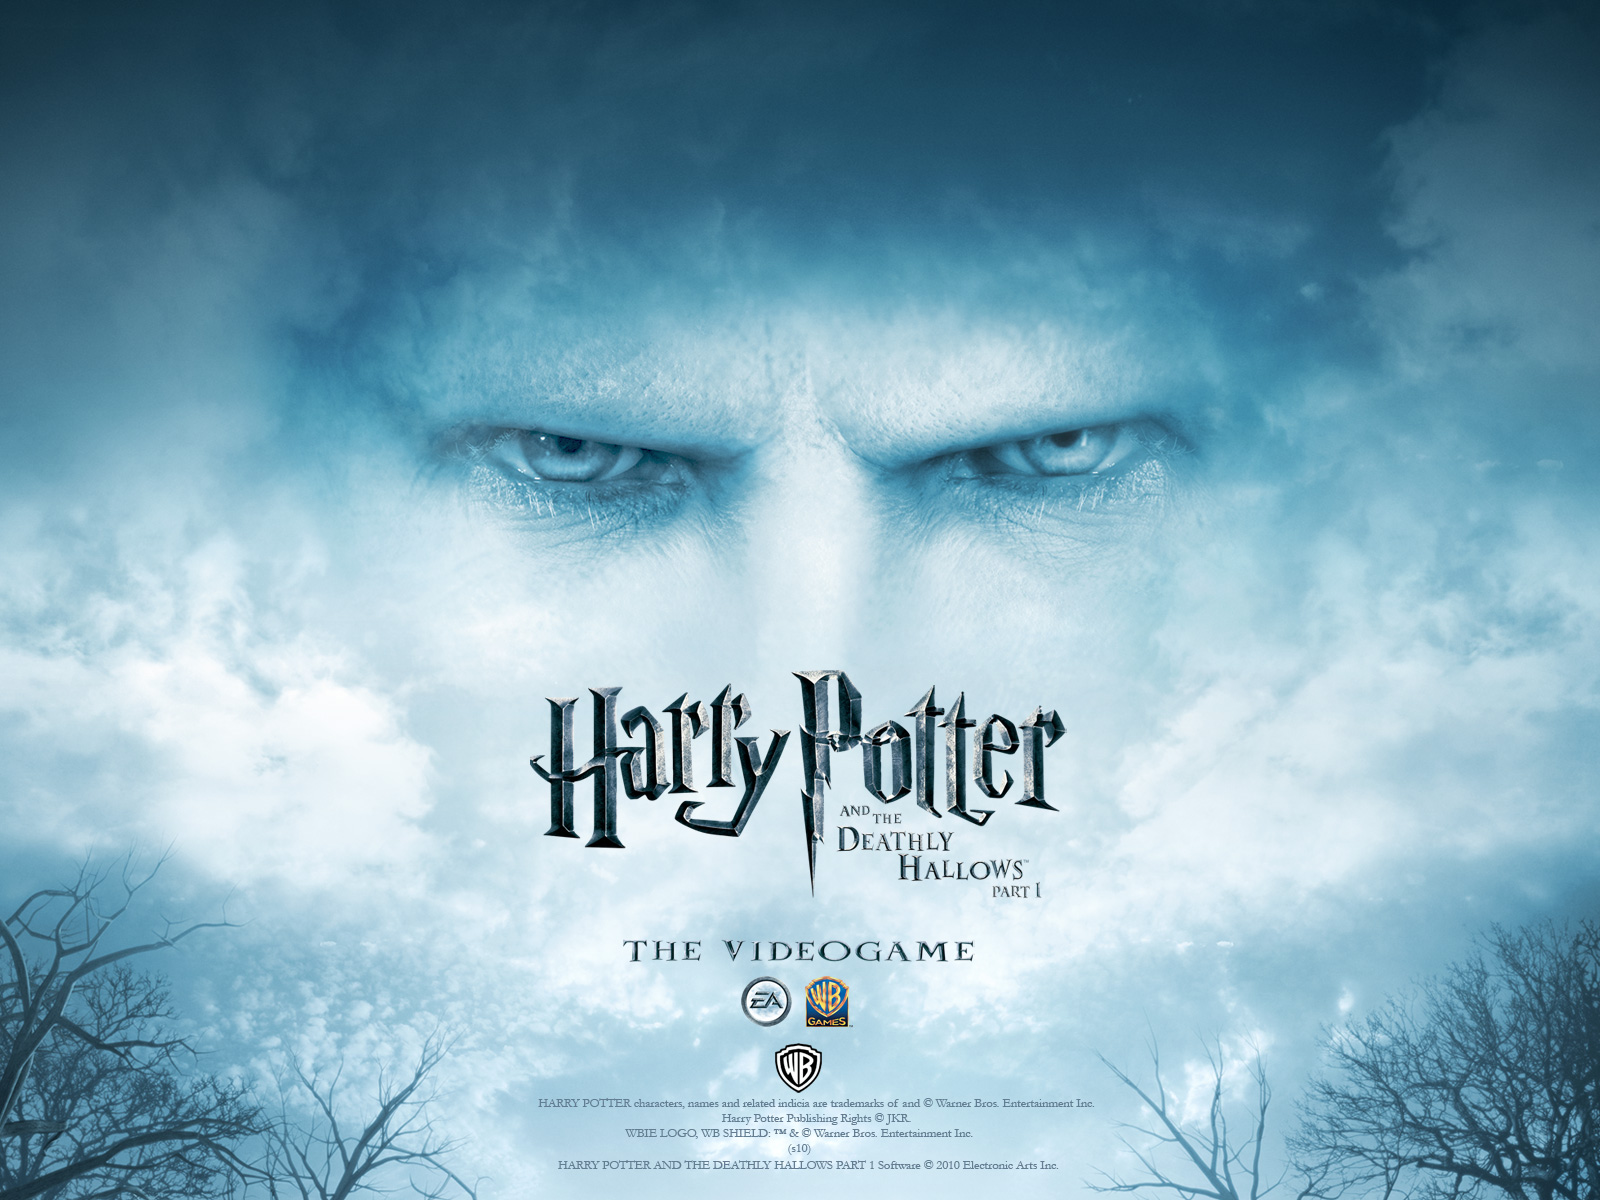 Harry Potter And The Deathly Hallows Part 1 Videogame Wallpaper